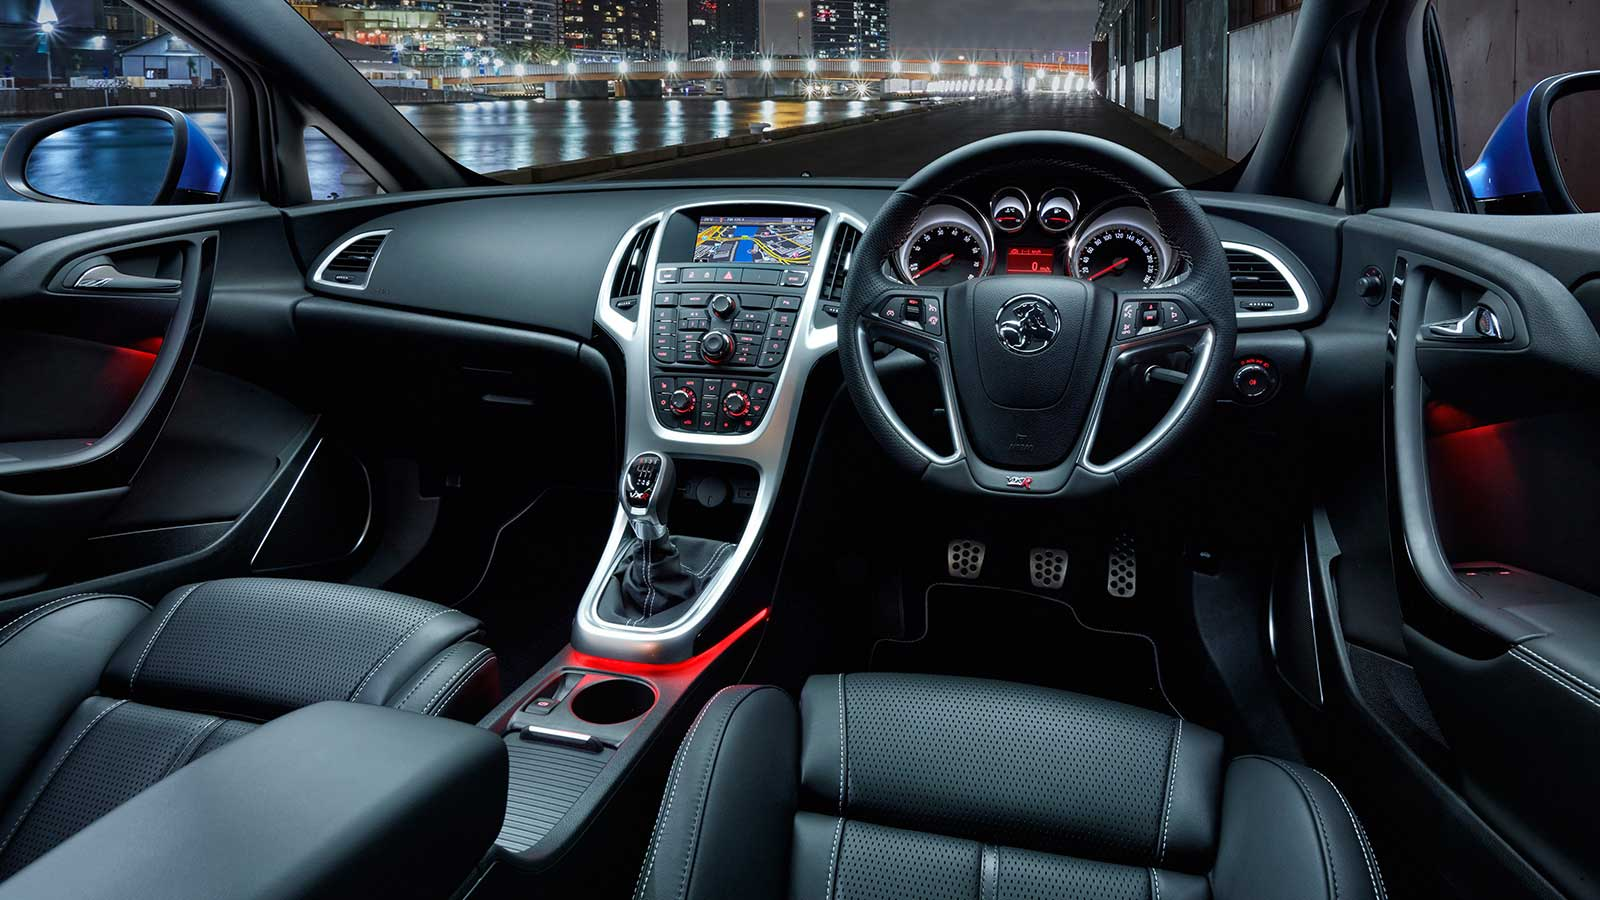 Holden Astra Gtc Interior Image Gallery, Pictures, Photos